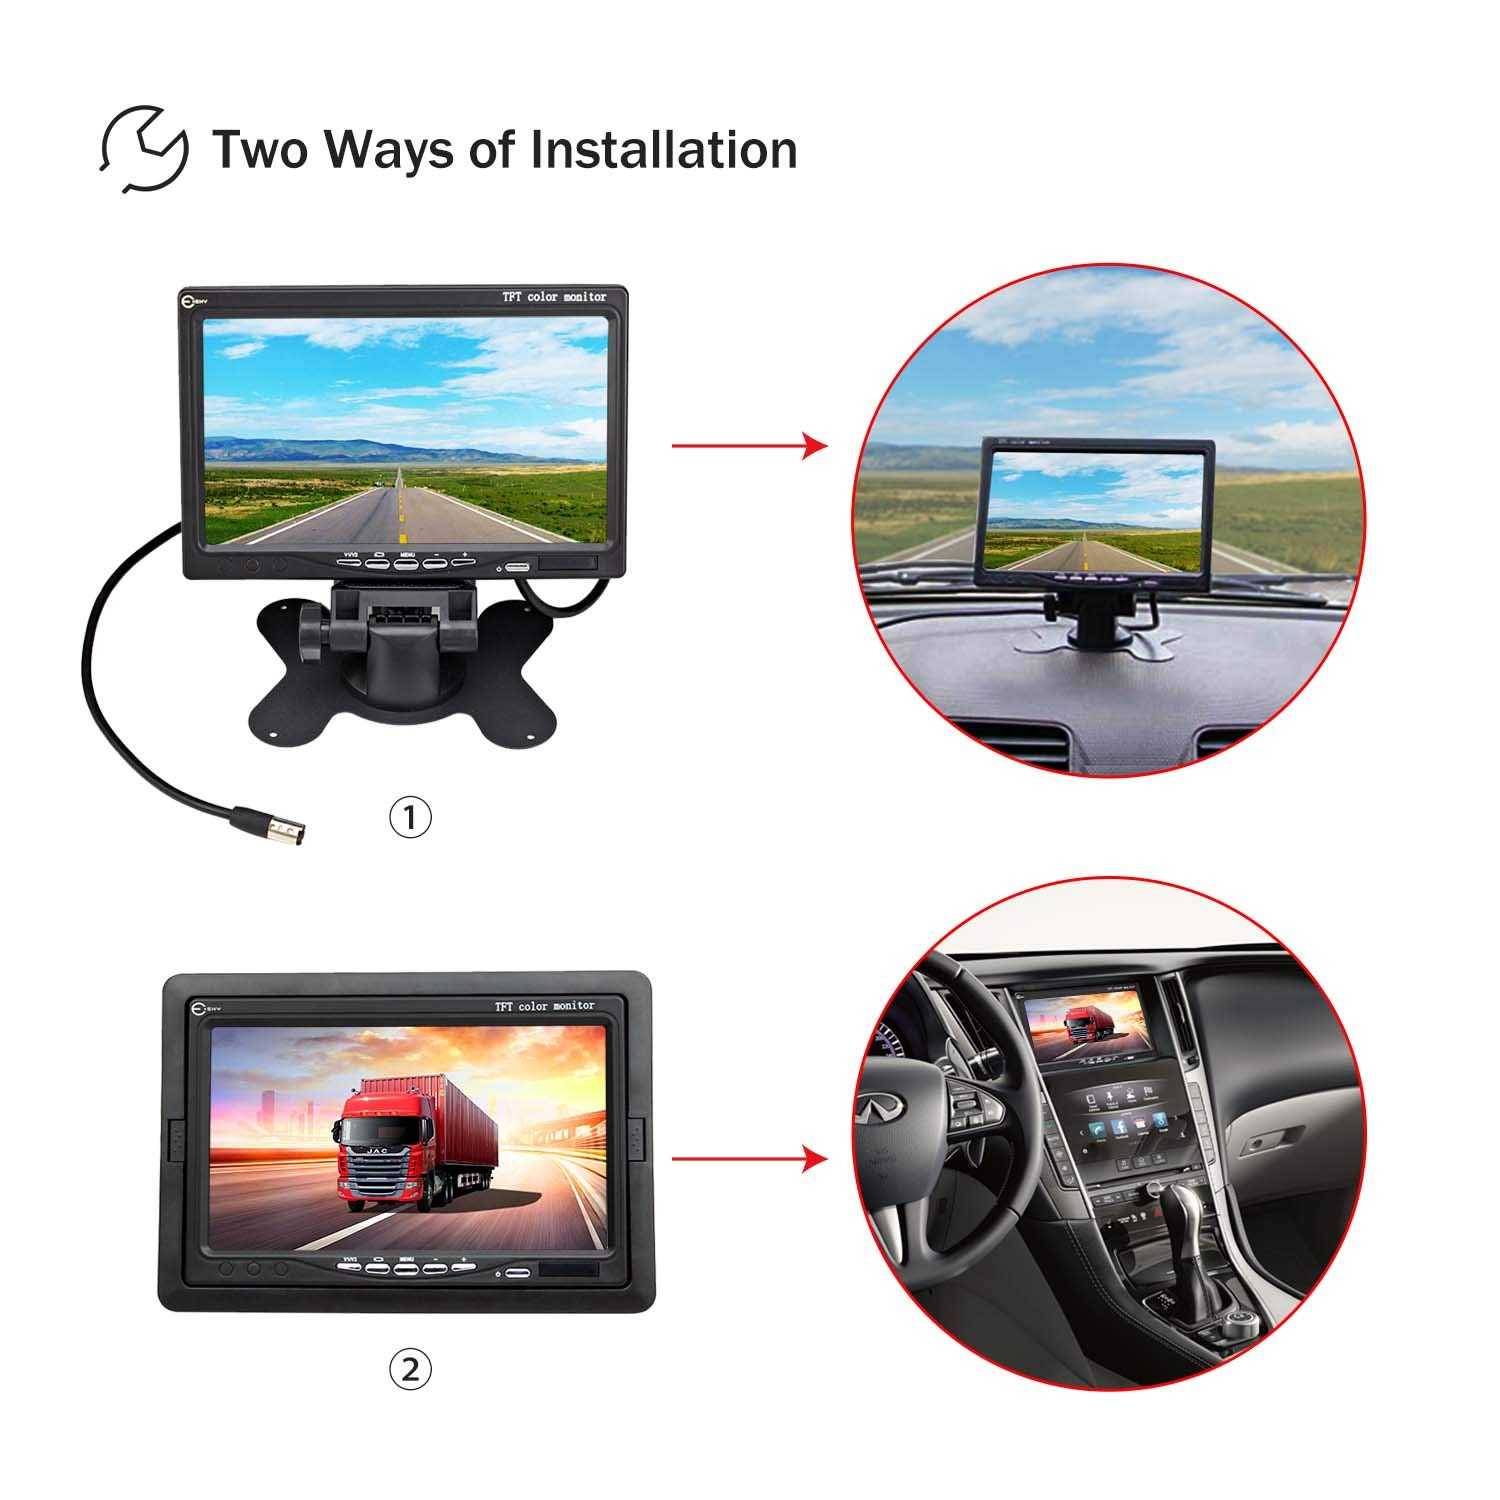 Car Rear View Backup Monitor,Esky 4.3 Inch TFT LCD Color Display Car Rear View 180 Degree Adjustable Monitor Screen for Rearview Vehicle Backup Parking Cameras LYSB00JDFVBVK-ELECTRNCS The Wirecutter/'s Pick